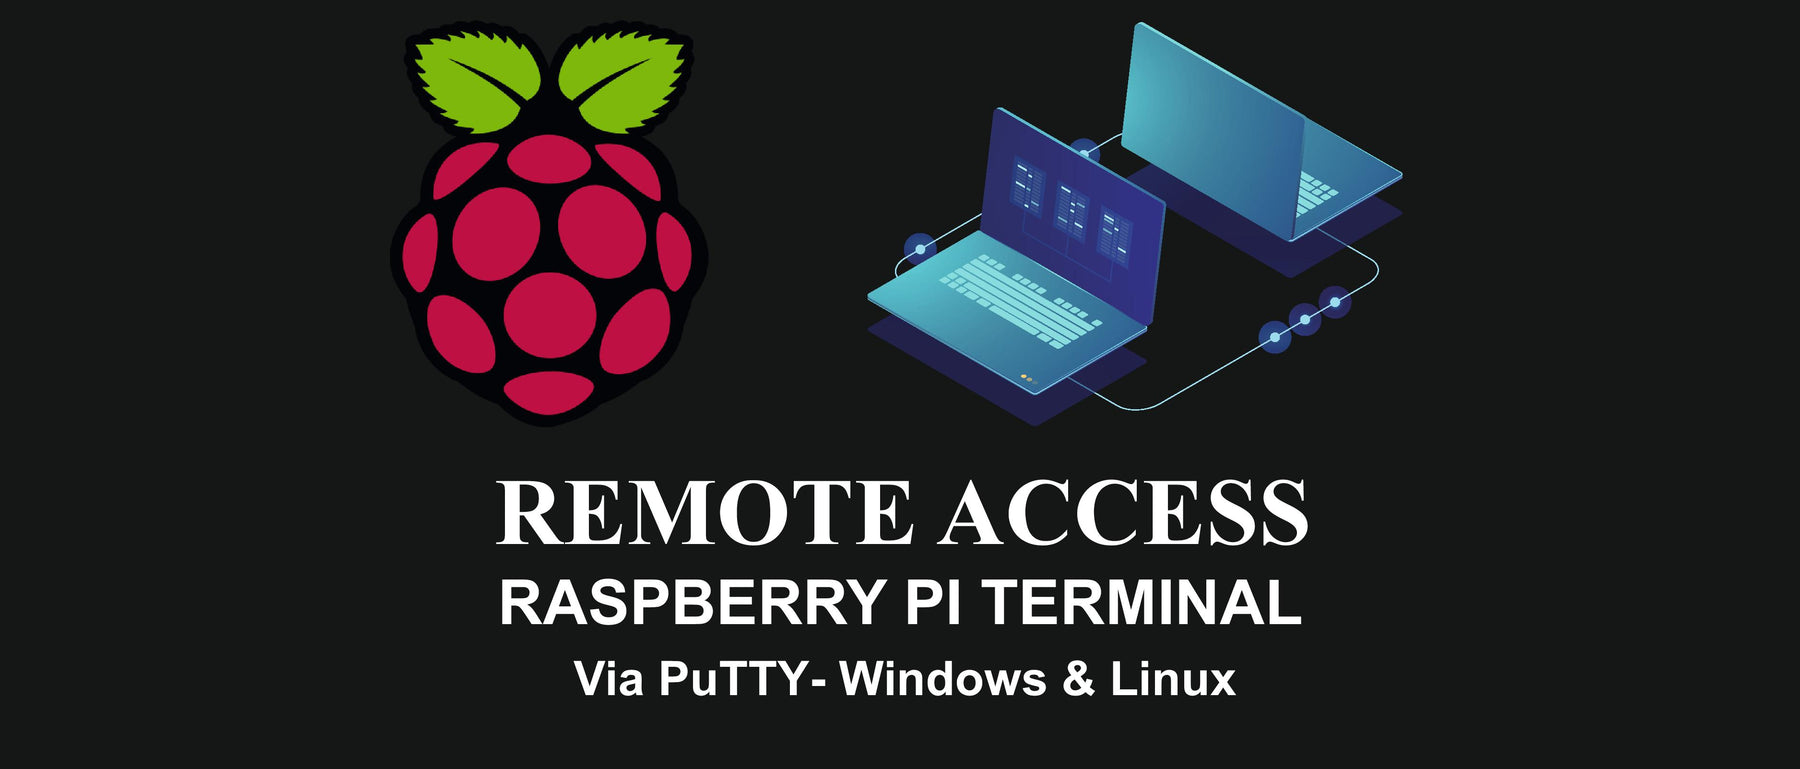 Remote Access of Raspberry Pi Terminal via PuTTY - Windows and Linux